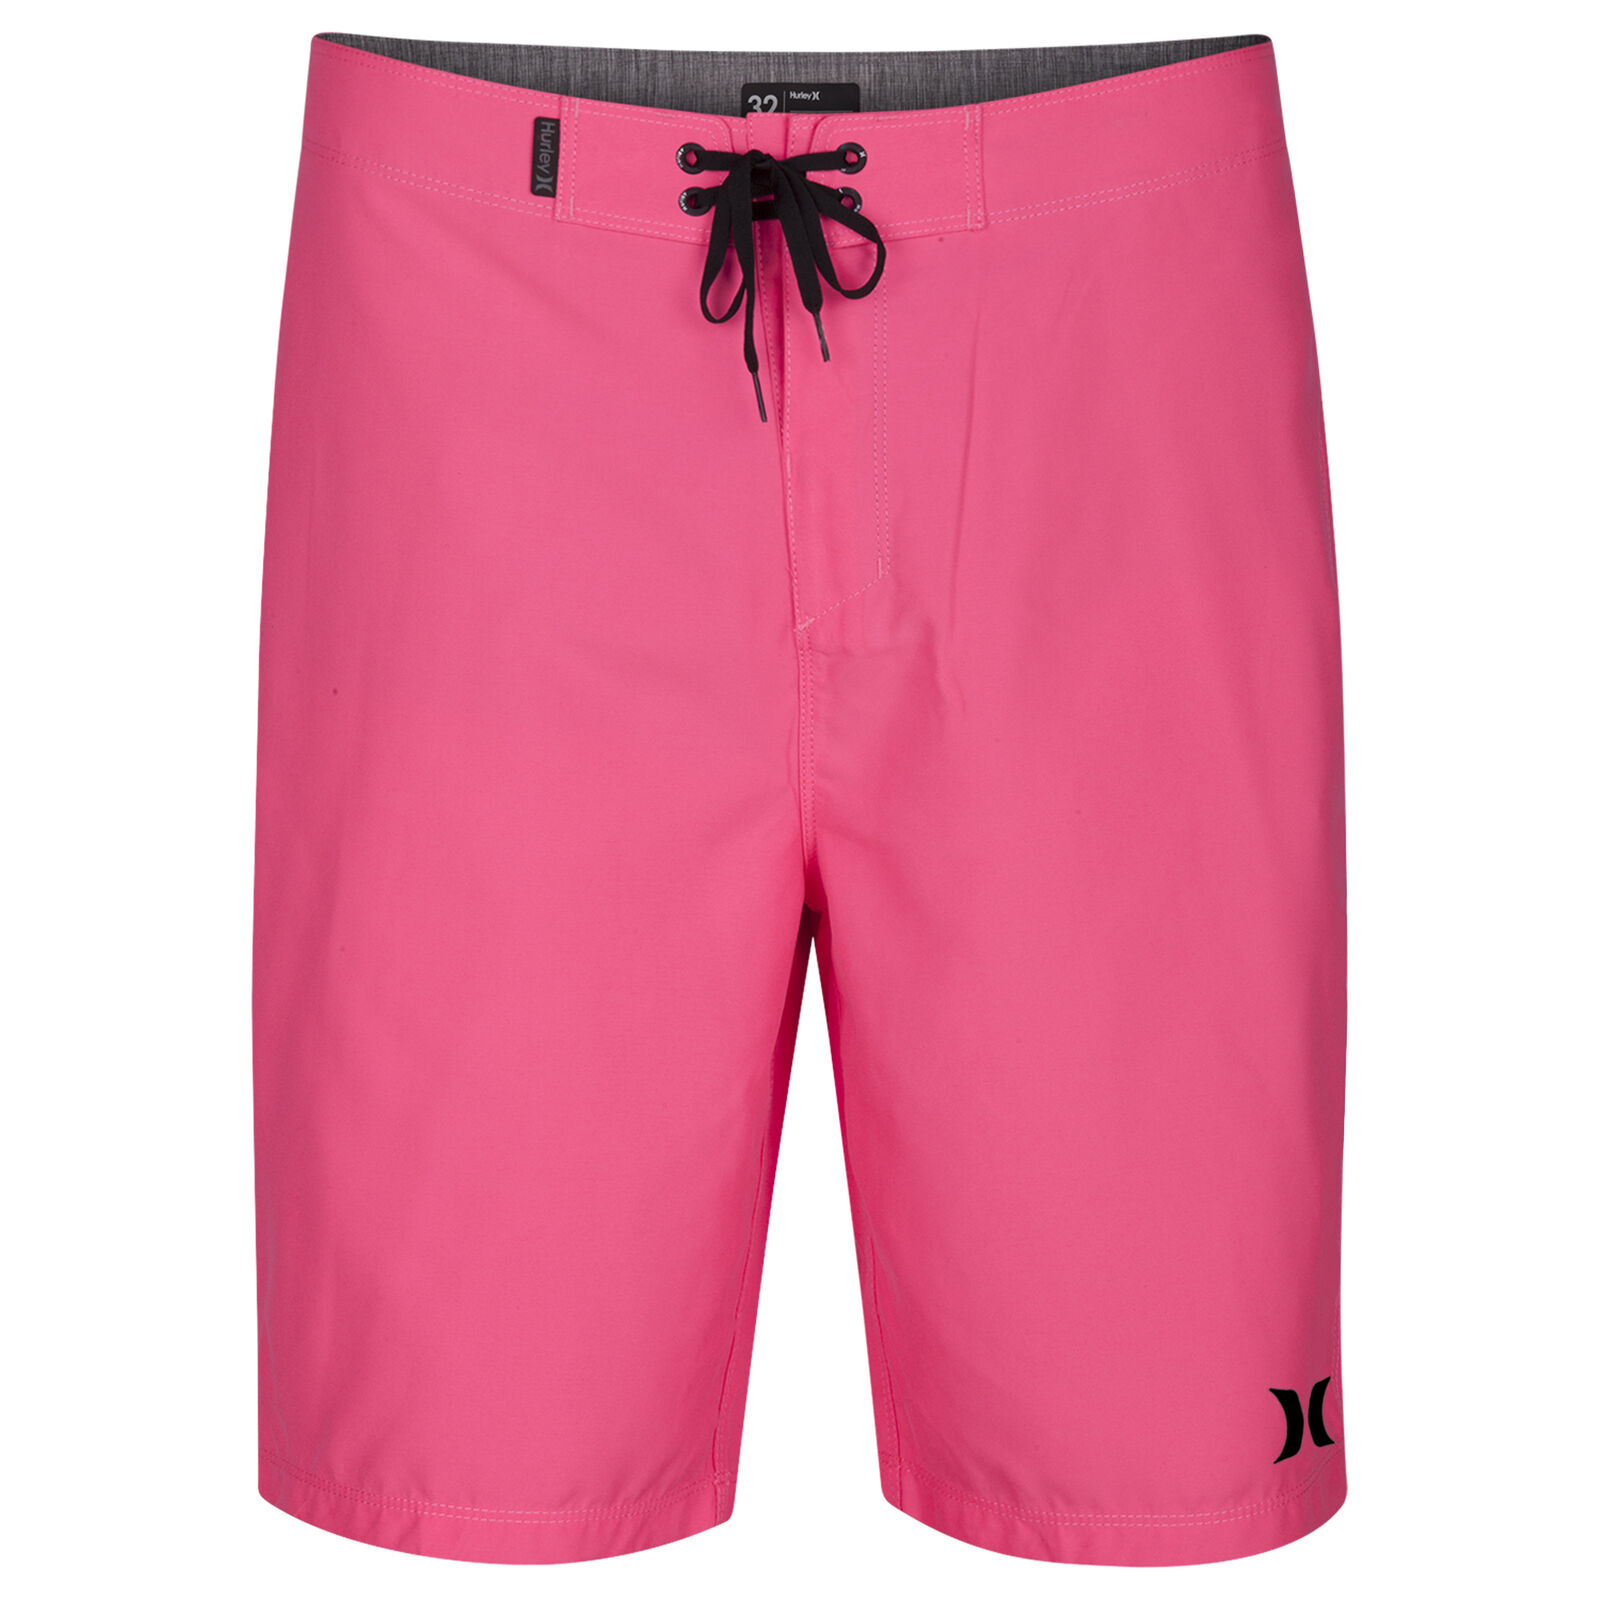 Hurley Icon Mid Length Boardshorts in Hyper Pink